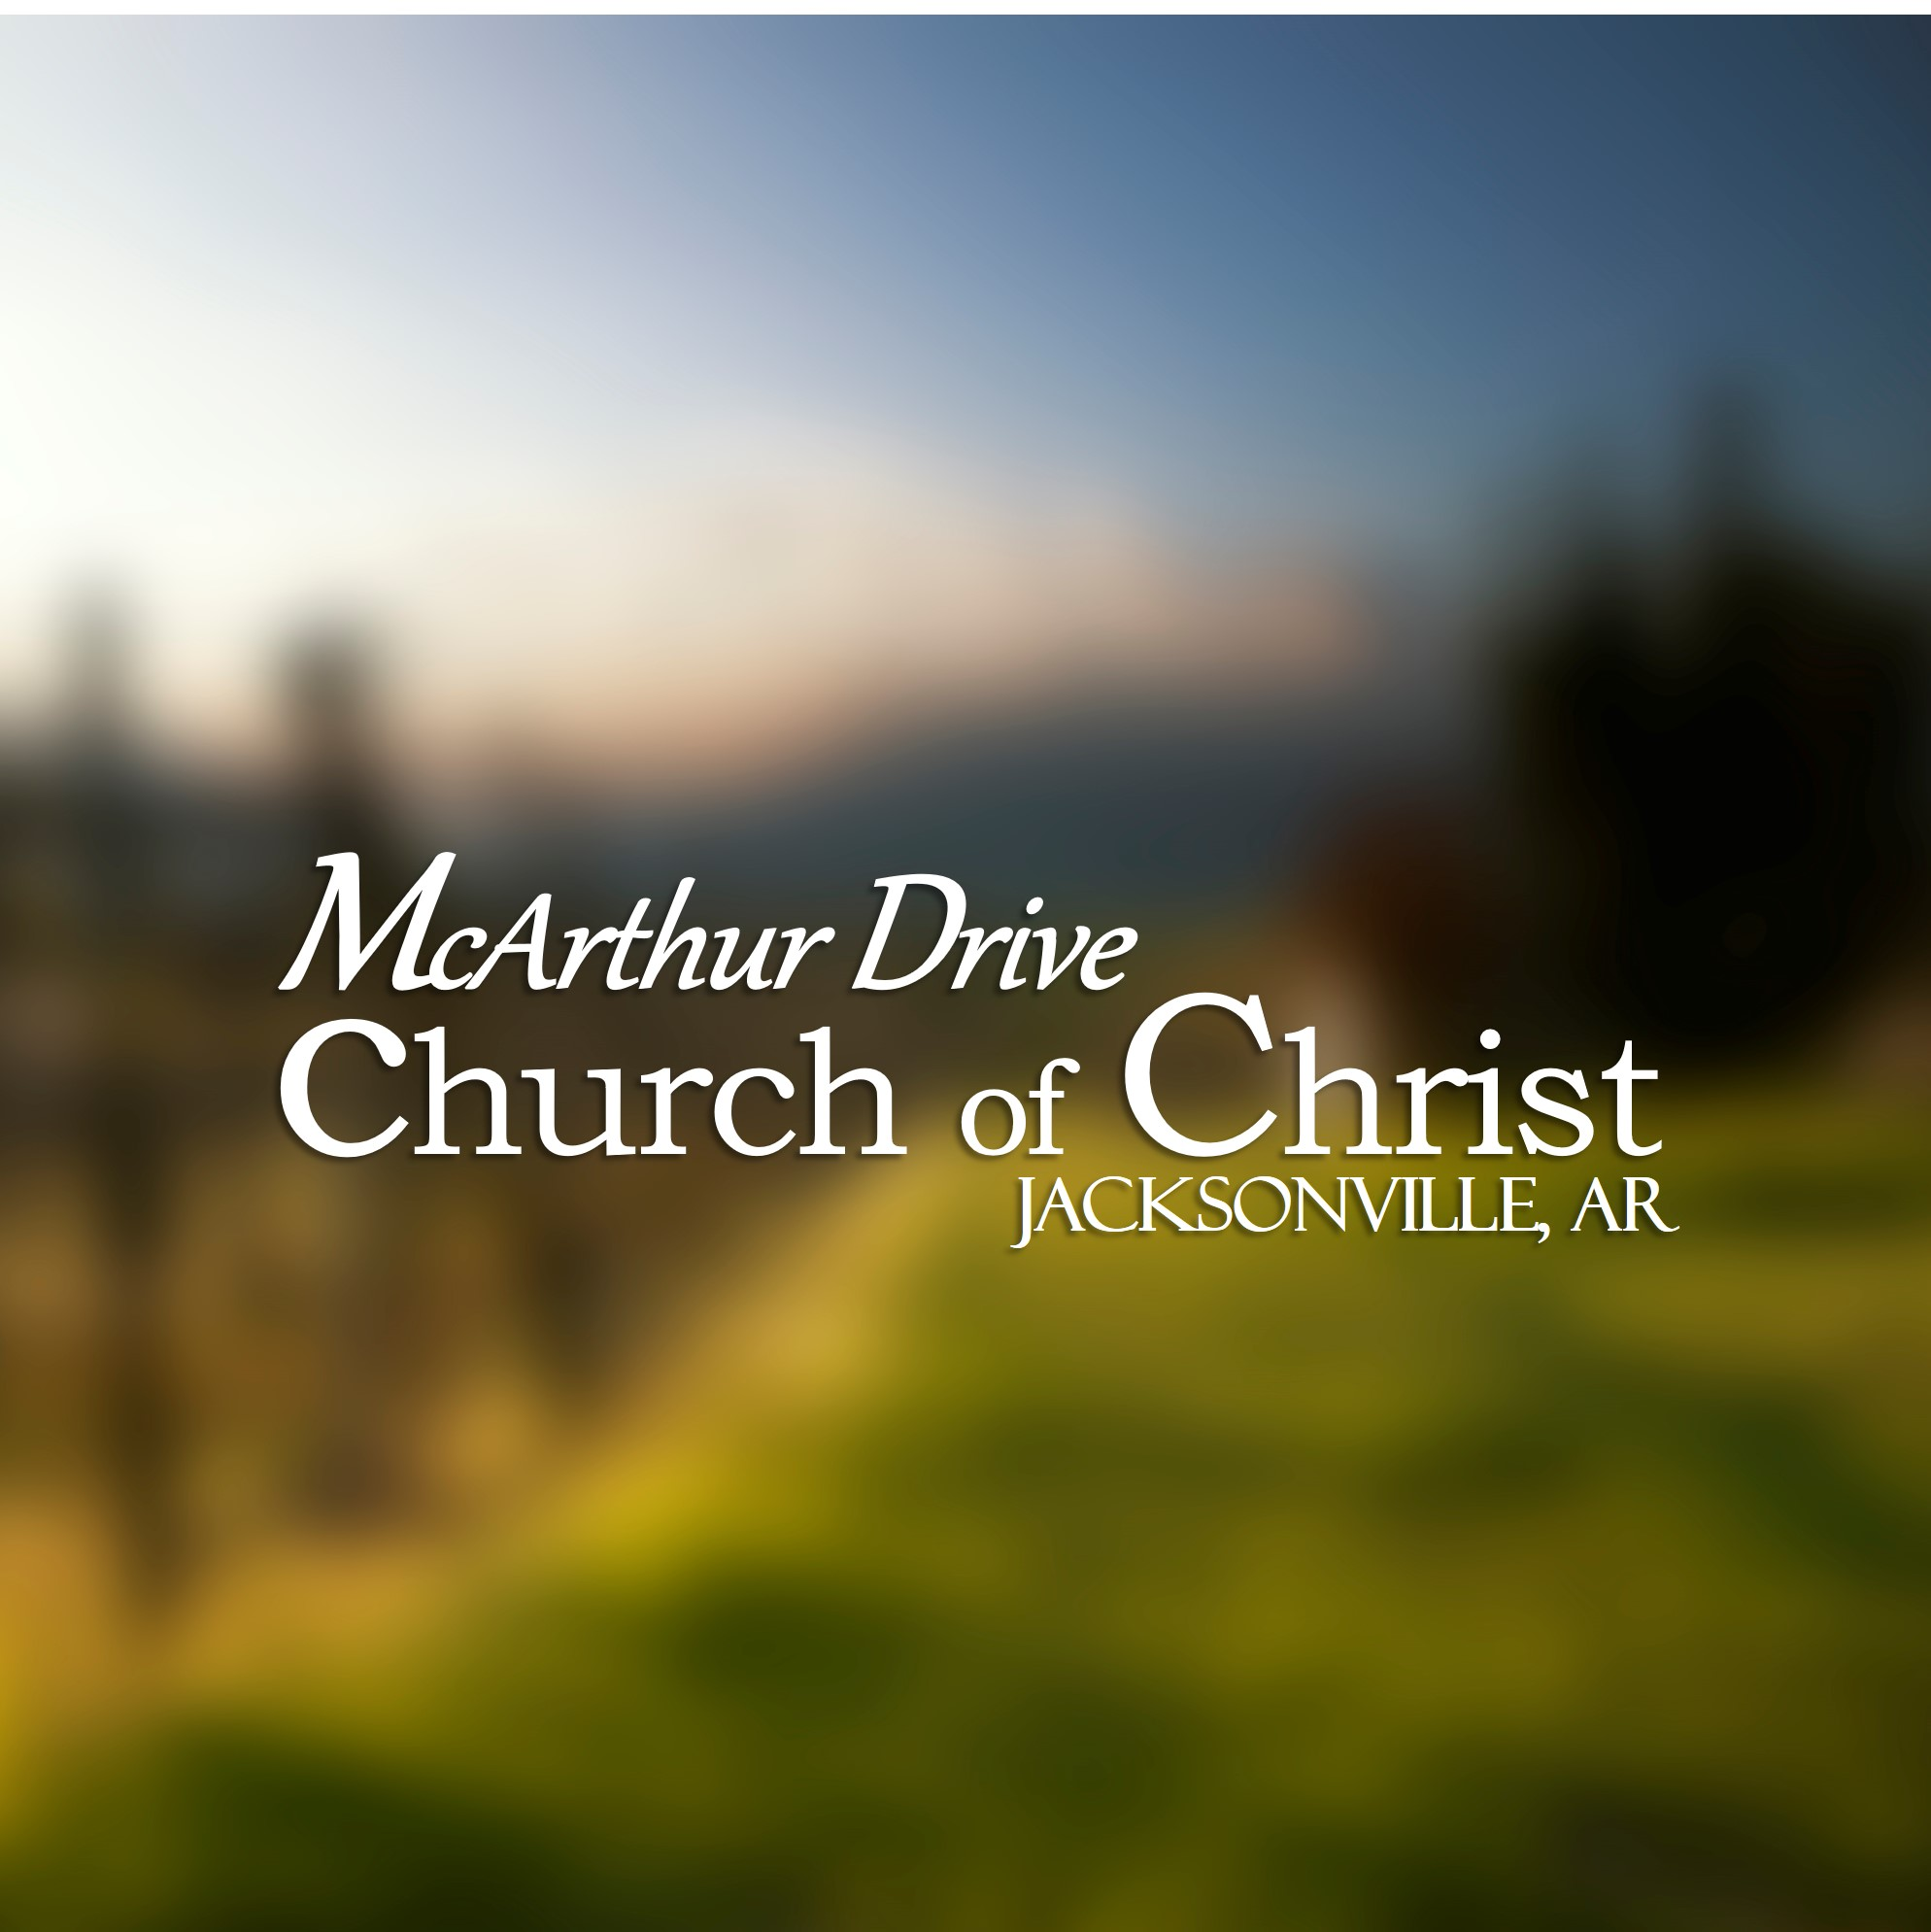 McArthur Drive church of Christ